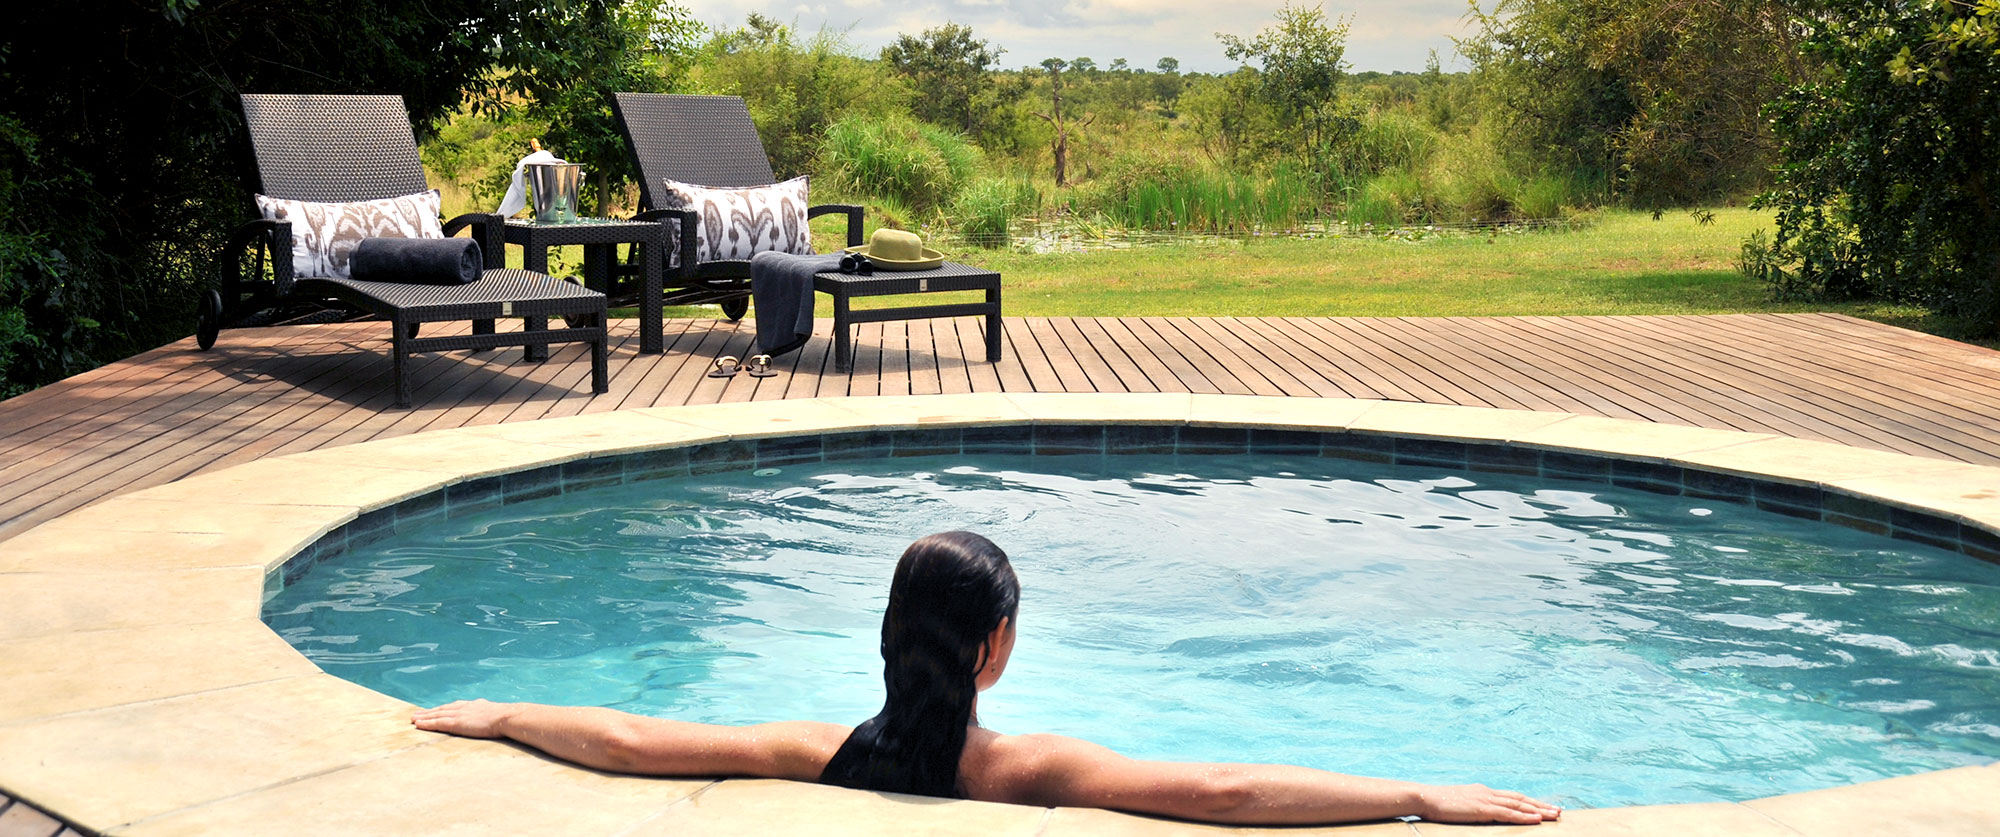 Safari and Beach Vacation: South Africa and Mozambique